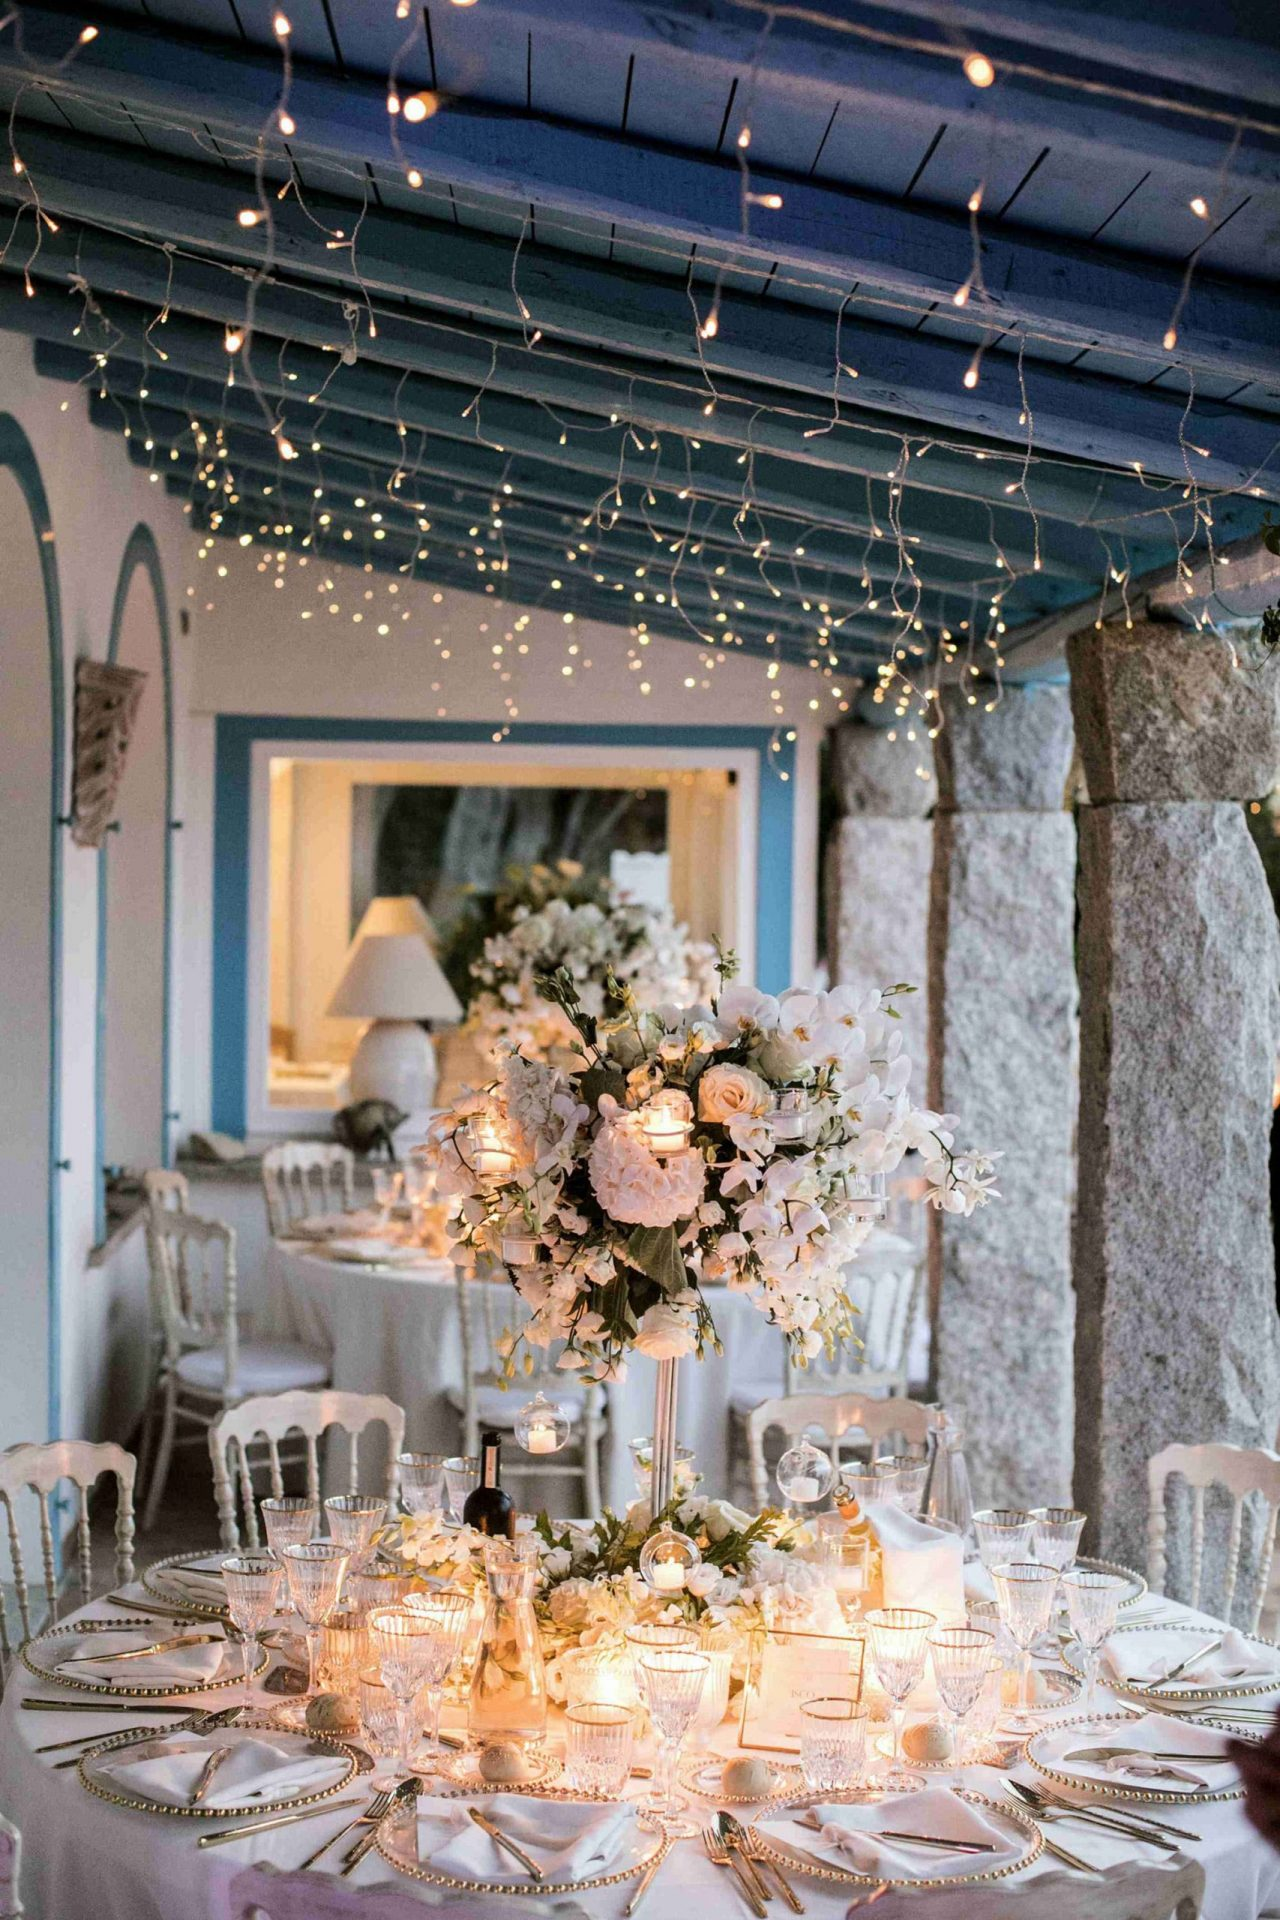 Charlotte and Mark, sophisticated wedding table decor by the sea